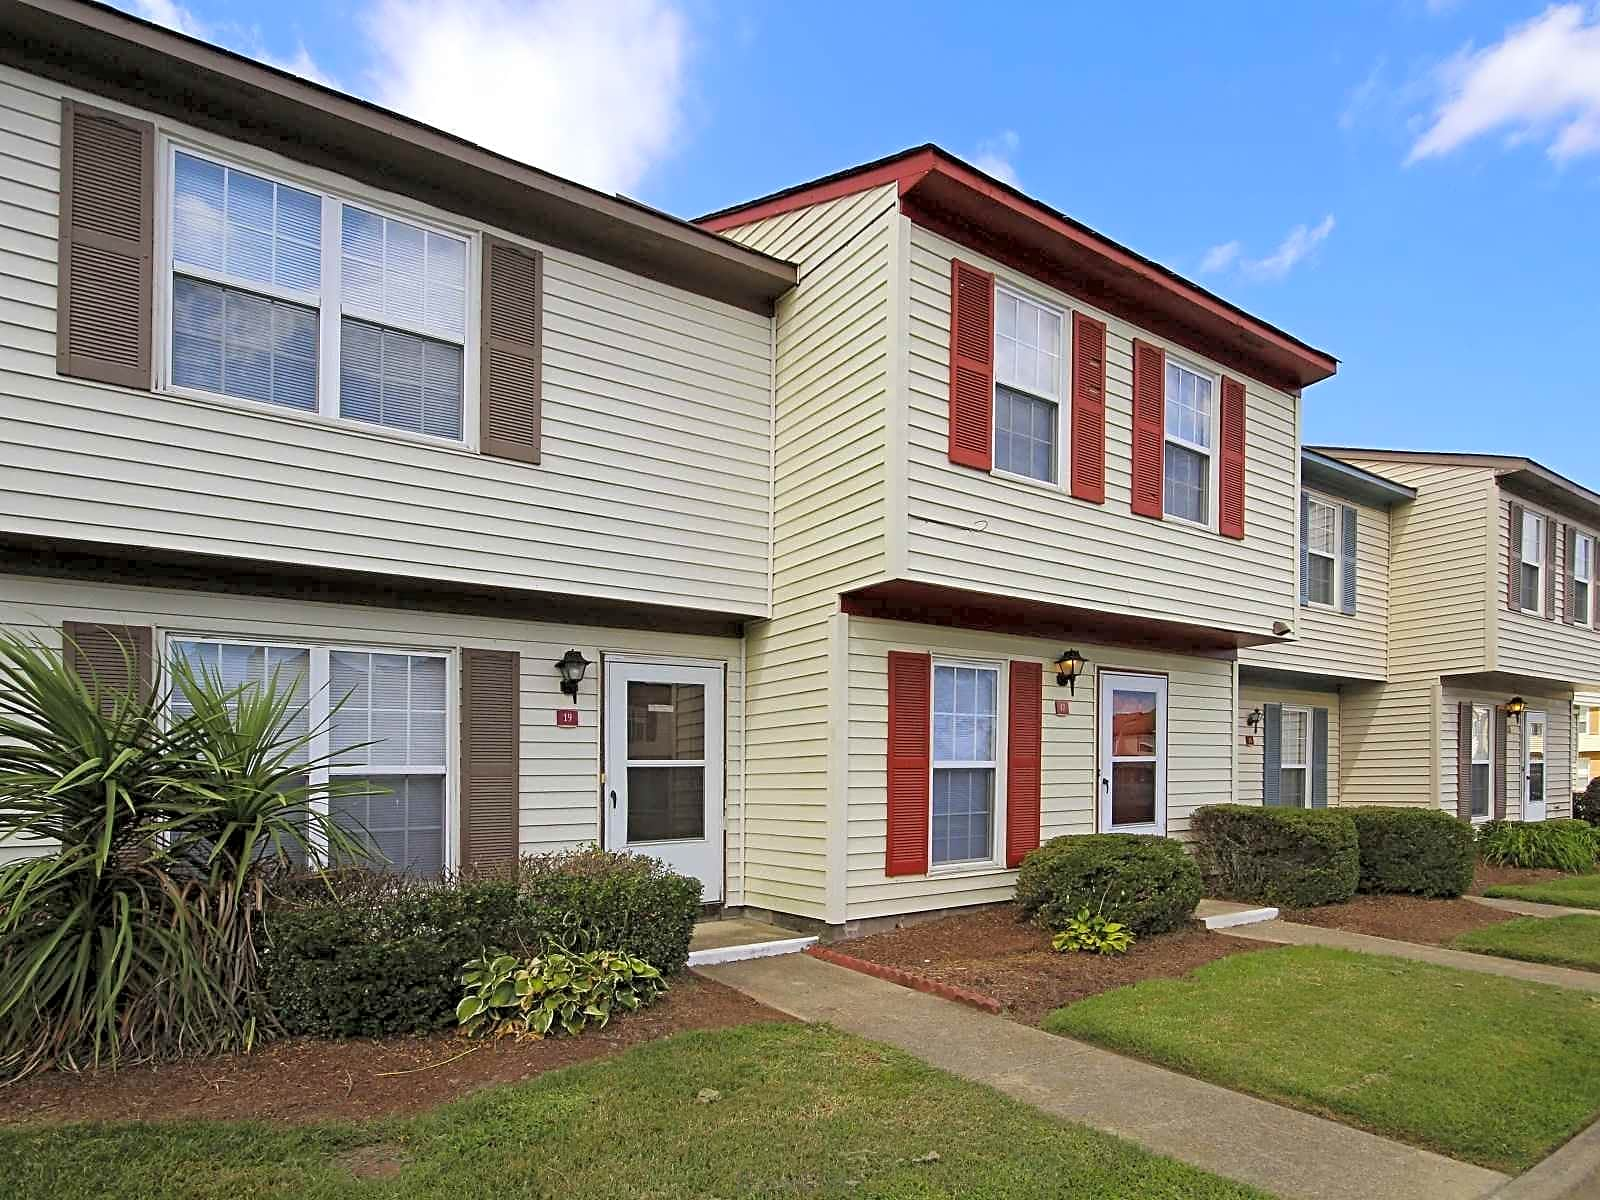 Pepperwood townhomes apartments portsmouth va 23703 for Pepperwood homes